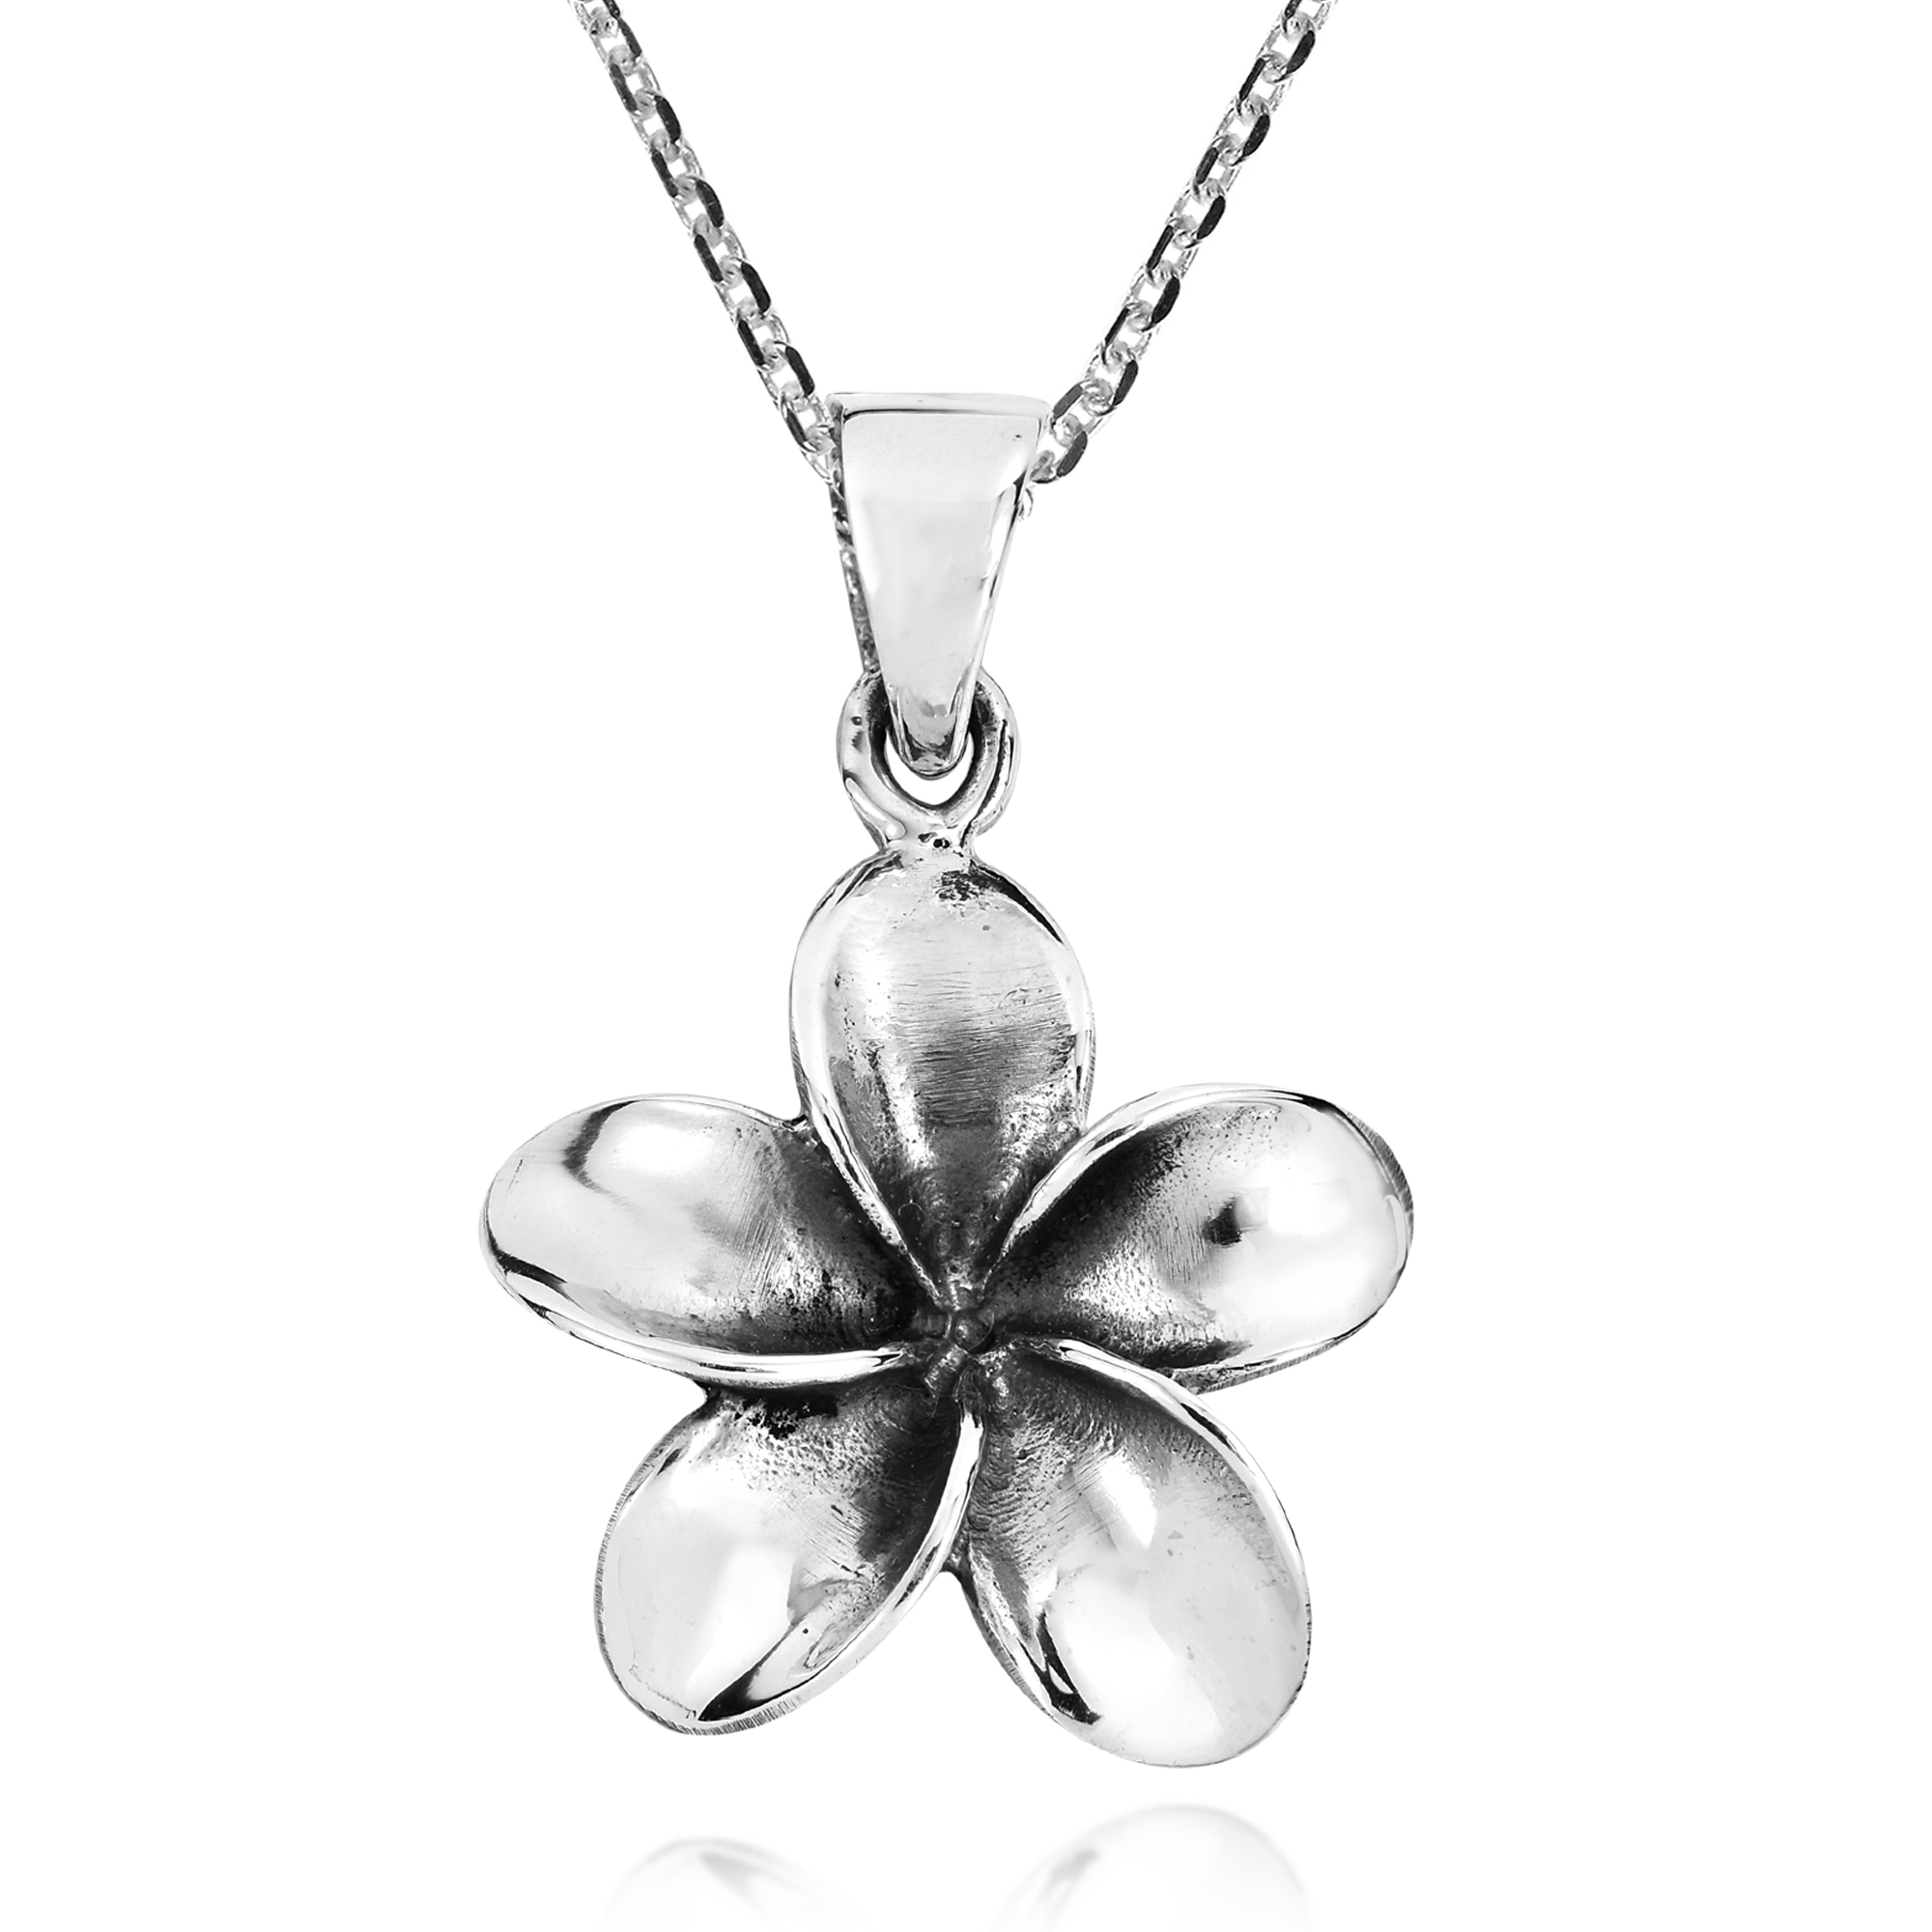 Hawaiian flower necklace silver flowers healthy express your chic and symbolic style with this precious hawaiian plumeria flower pendant which rests upon izmirmasajfo